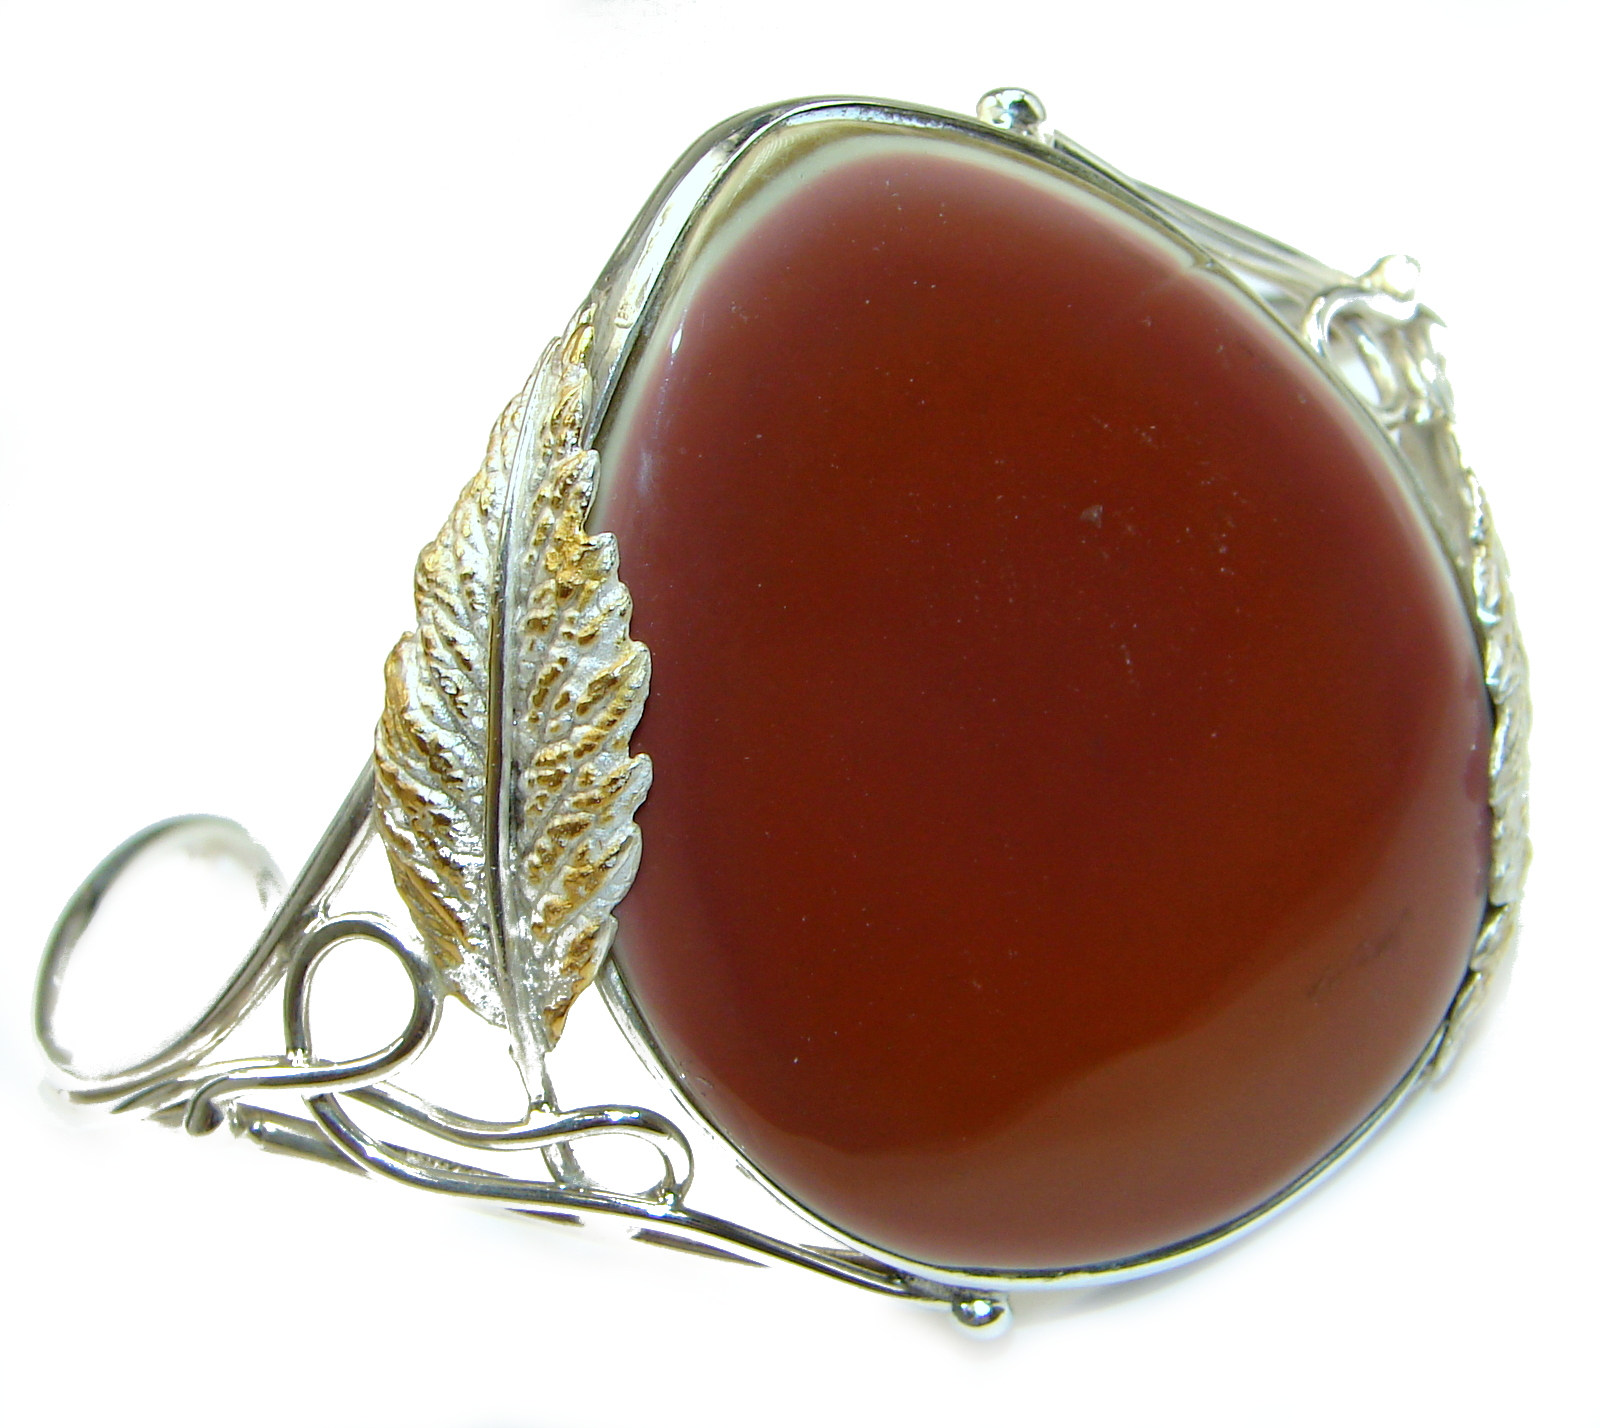 Rustic Design Bohemian Style Excellent quality Imperial Jasper .925 Sterling Silver Bracelet / Cuff